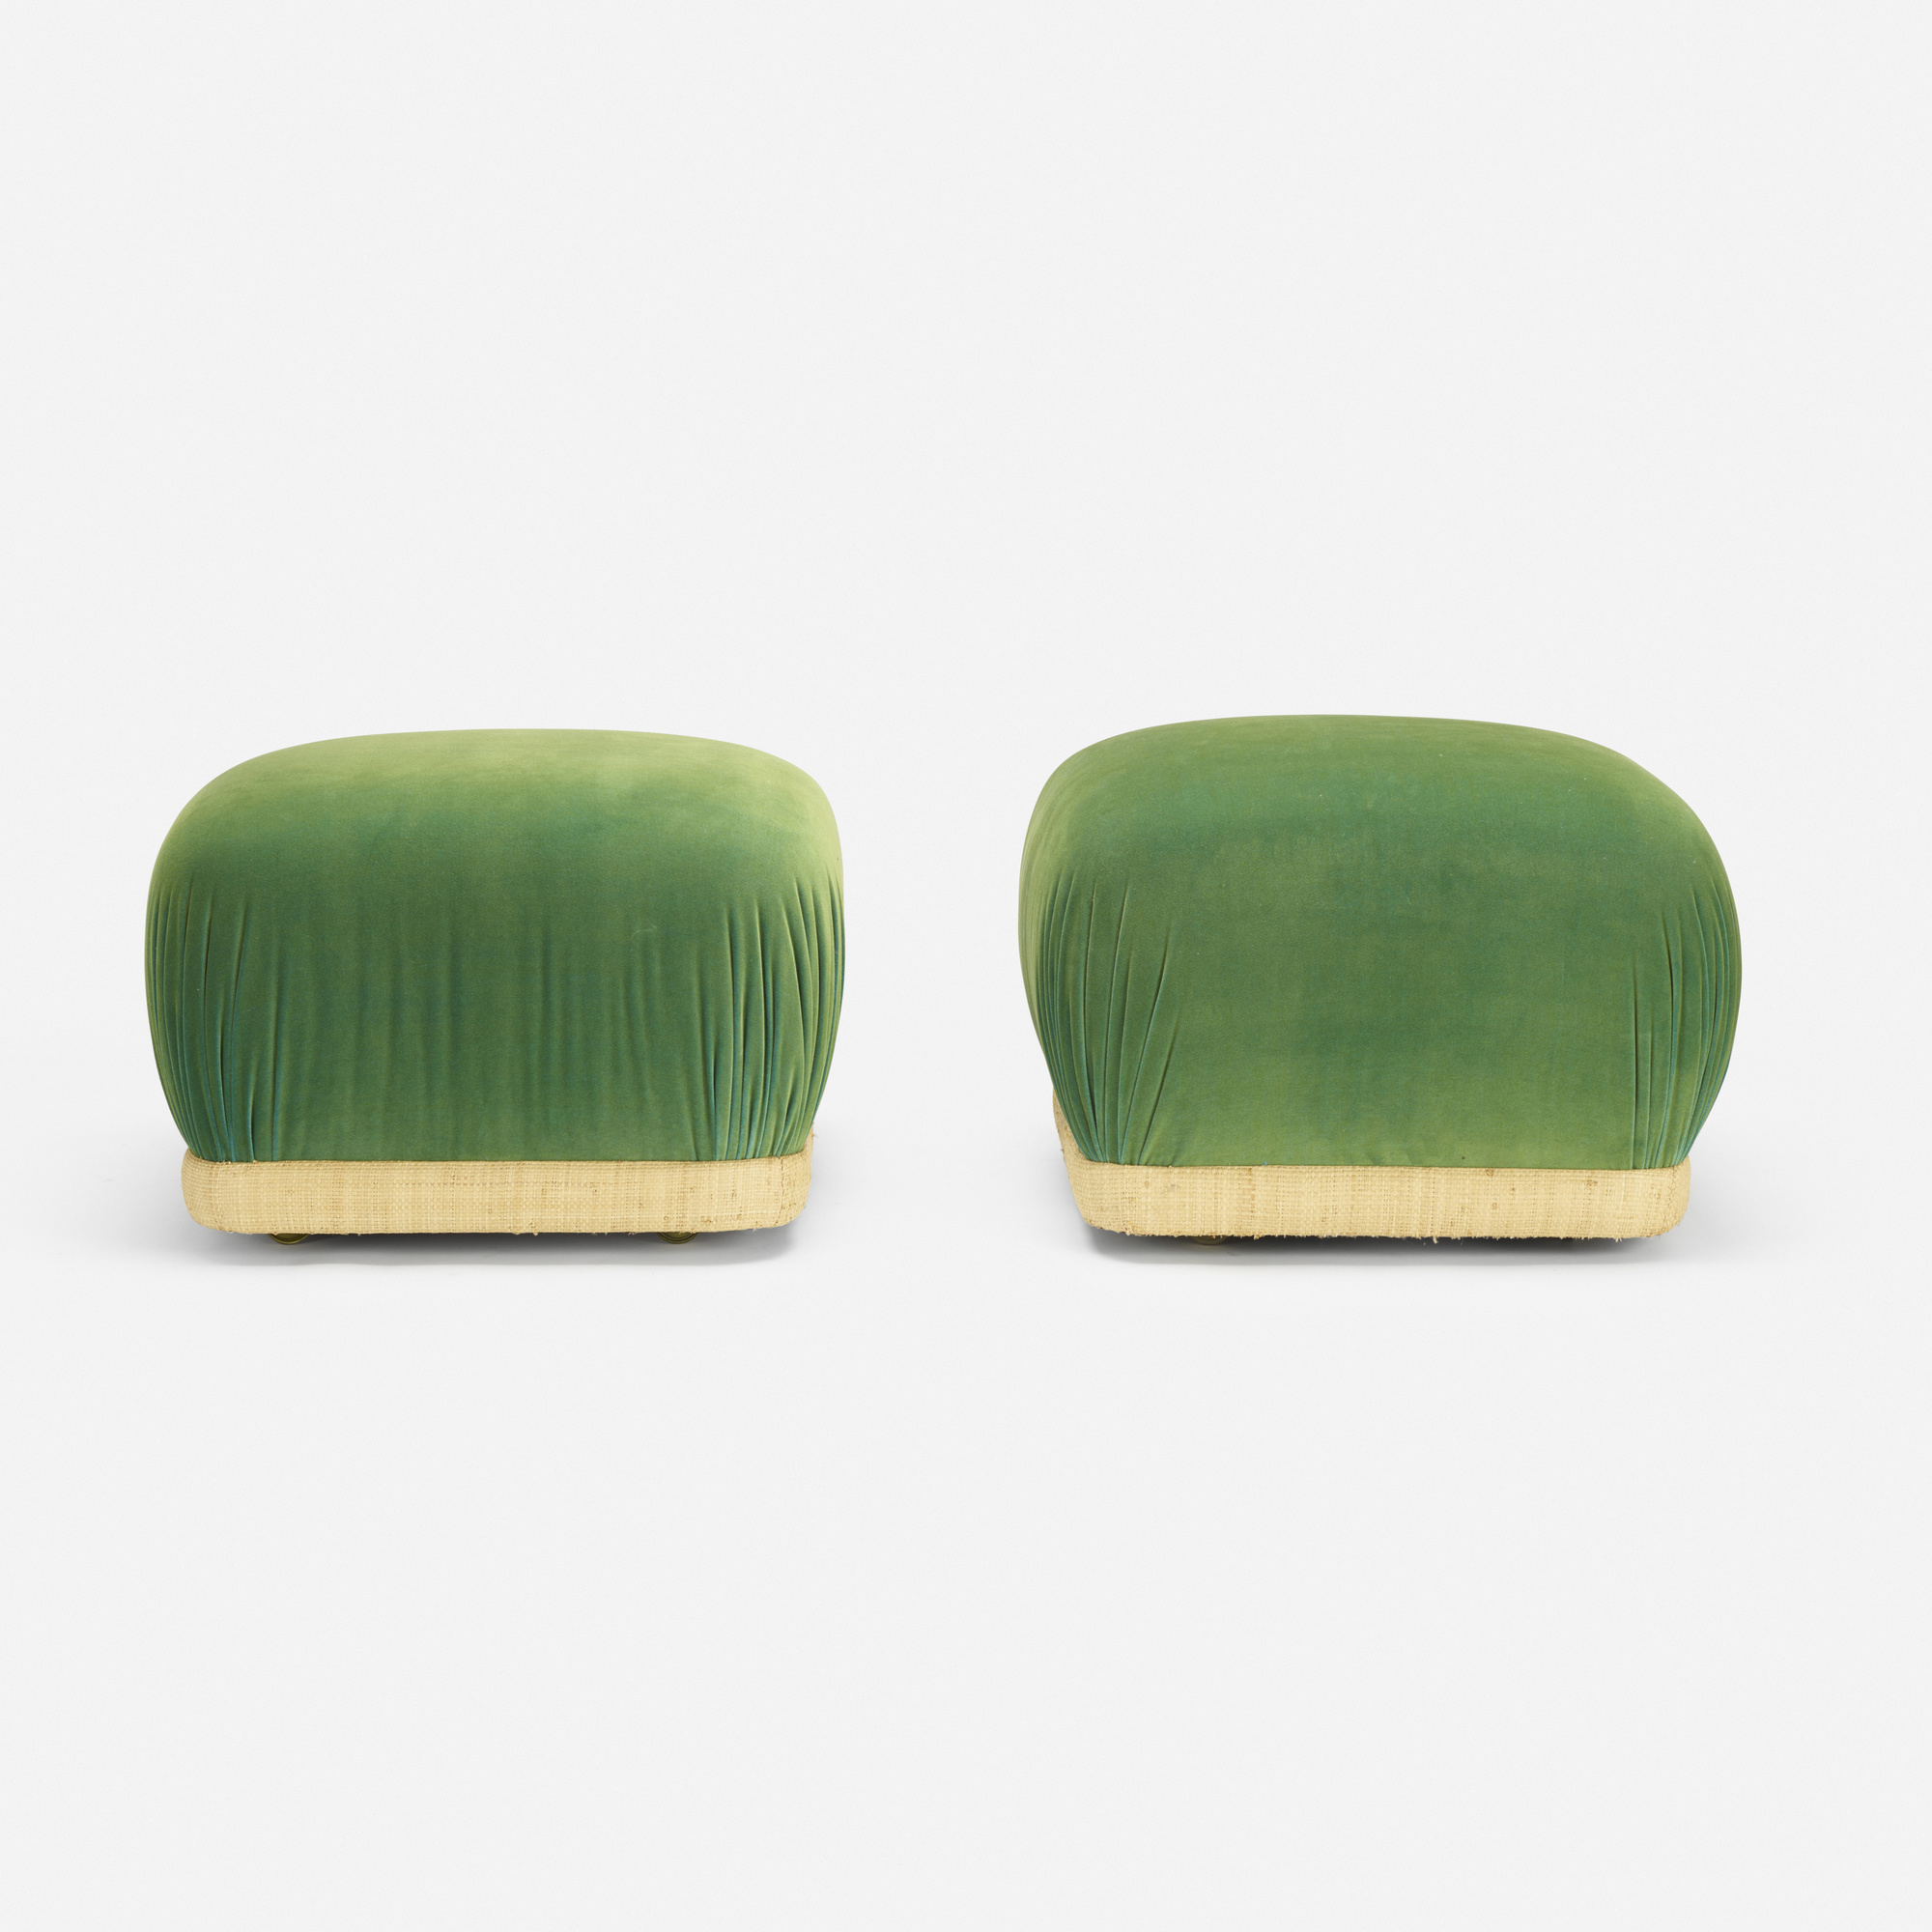 270: After Karl Springer / ottomans, pair (2 of 3)